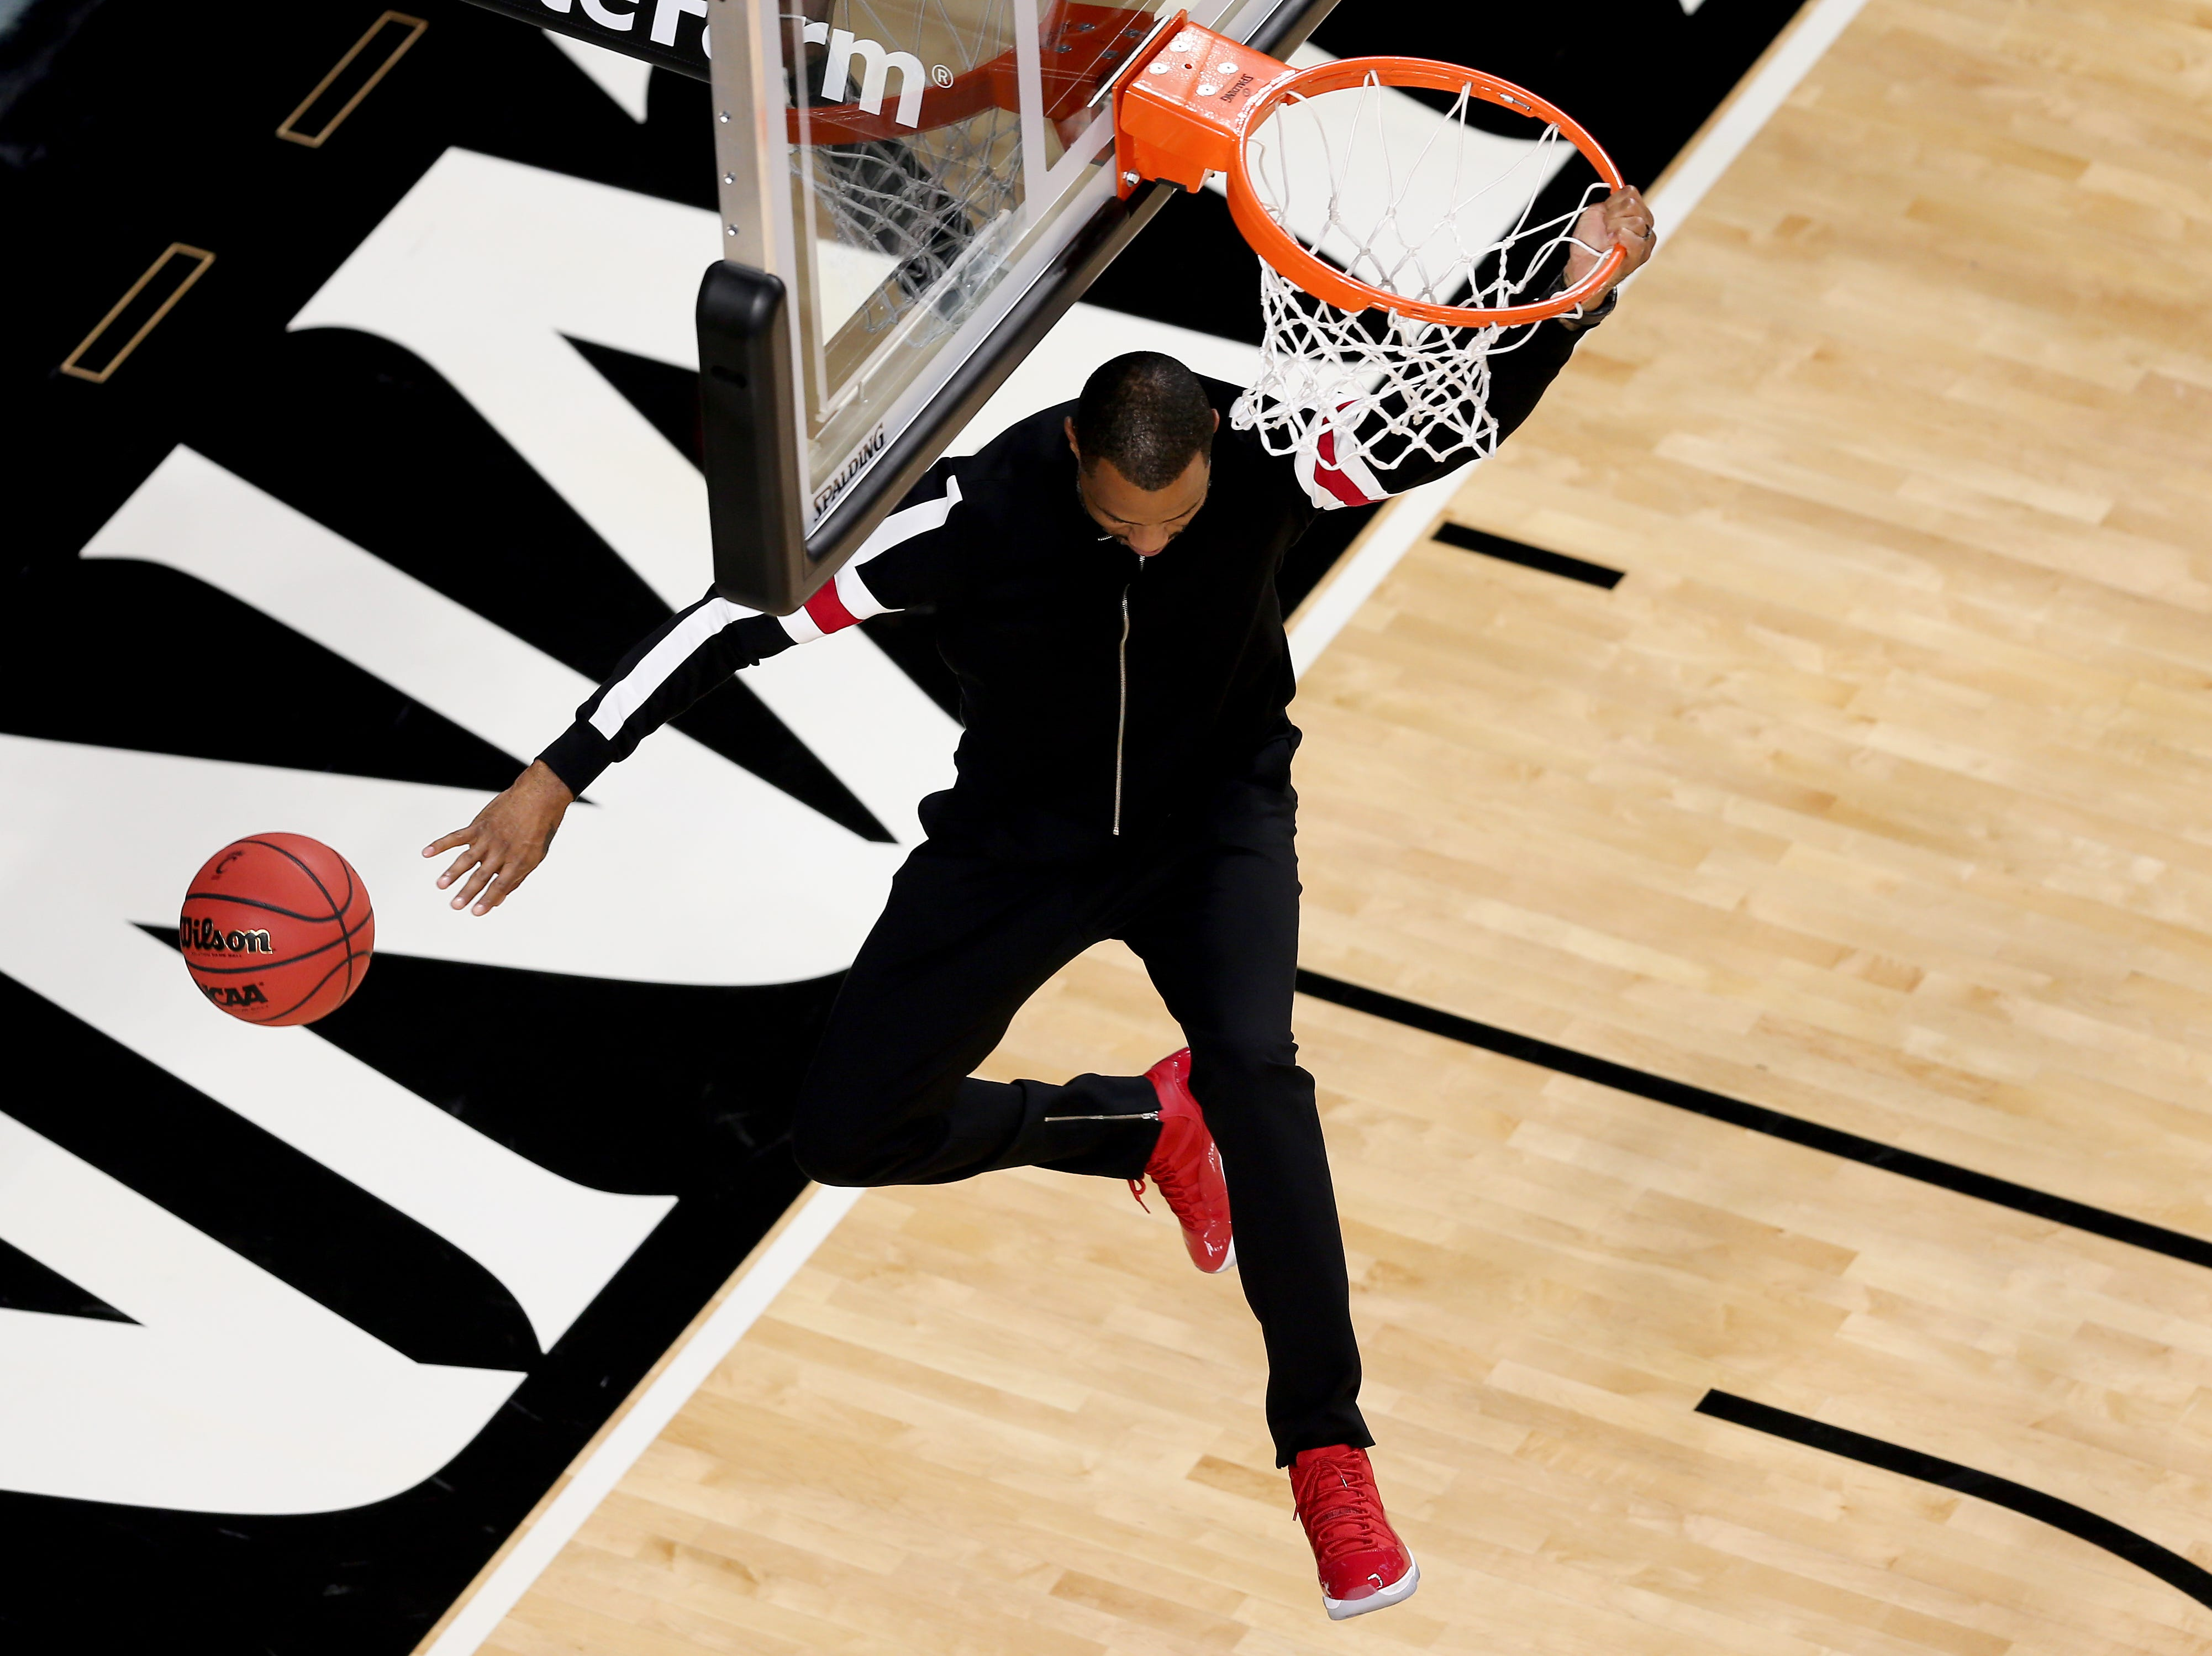 Cincinnati Bearcats basketball great Kenyon Martin dunks the ball during pregame festivities before college basketball game between the Ohio State Buckeyes and the Cincinnati Bearcats, Wednesday, Nov. 7, 2018, at Fifth Third Arena in Cincinnati.